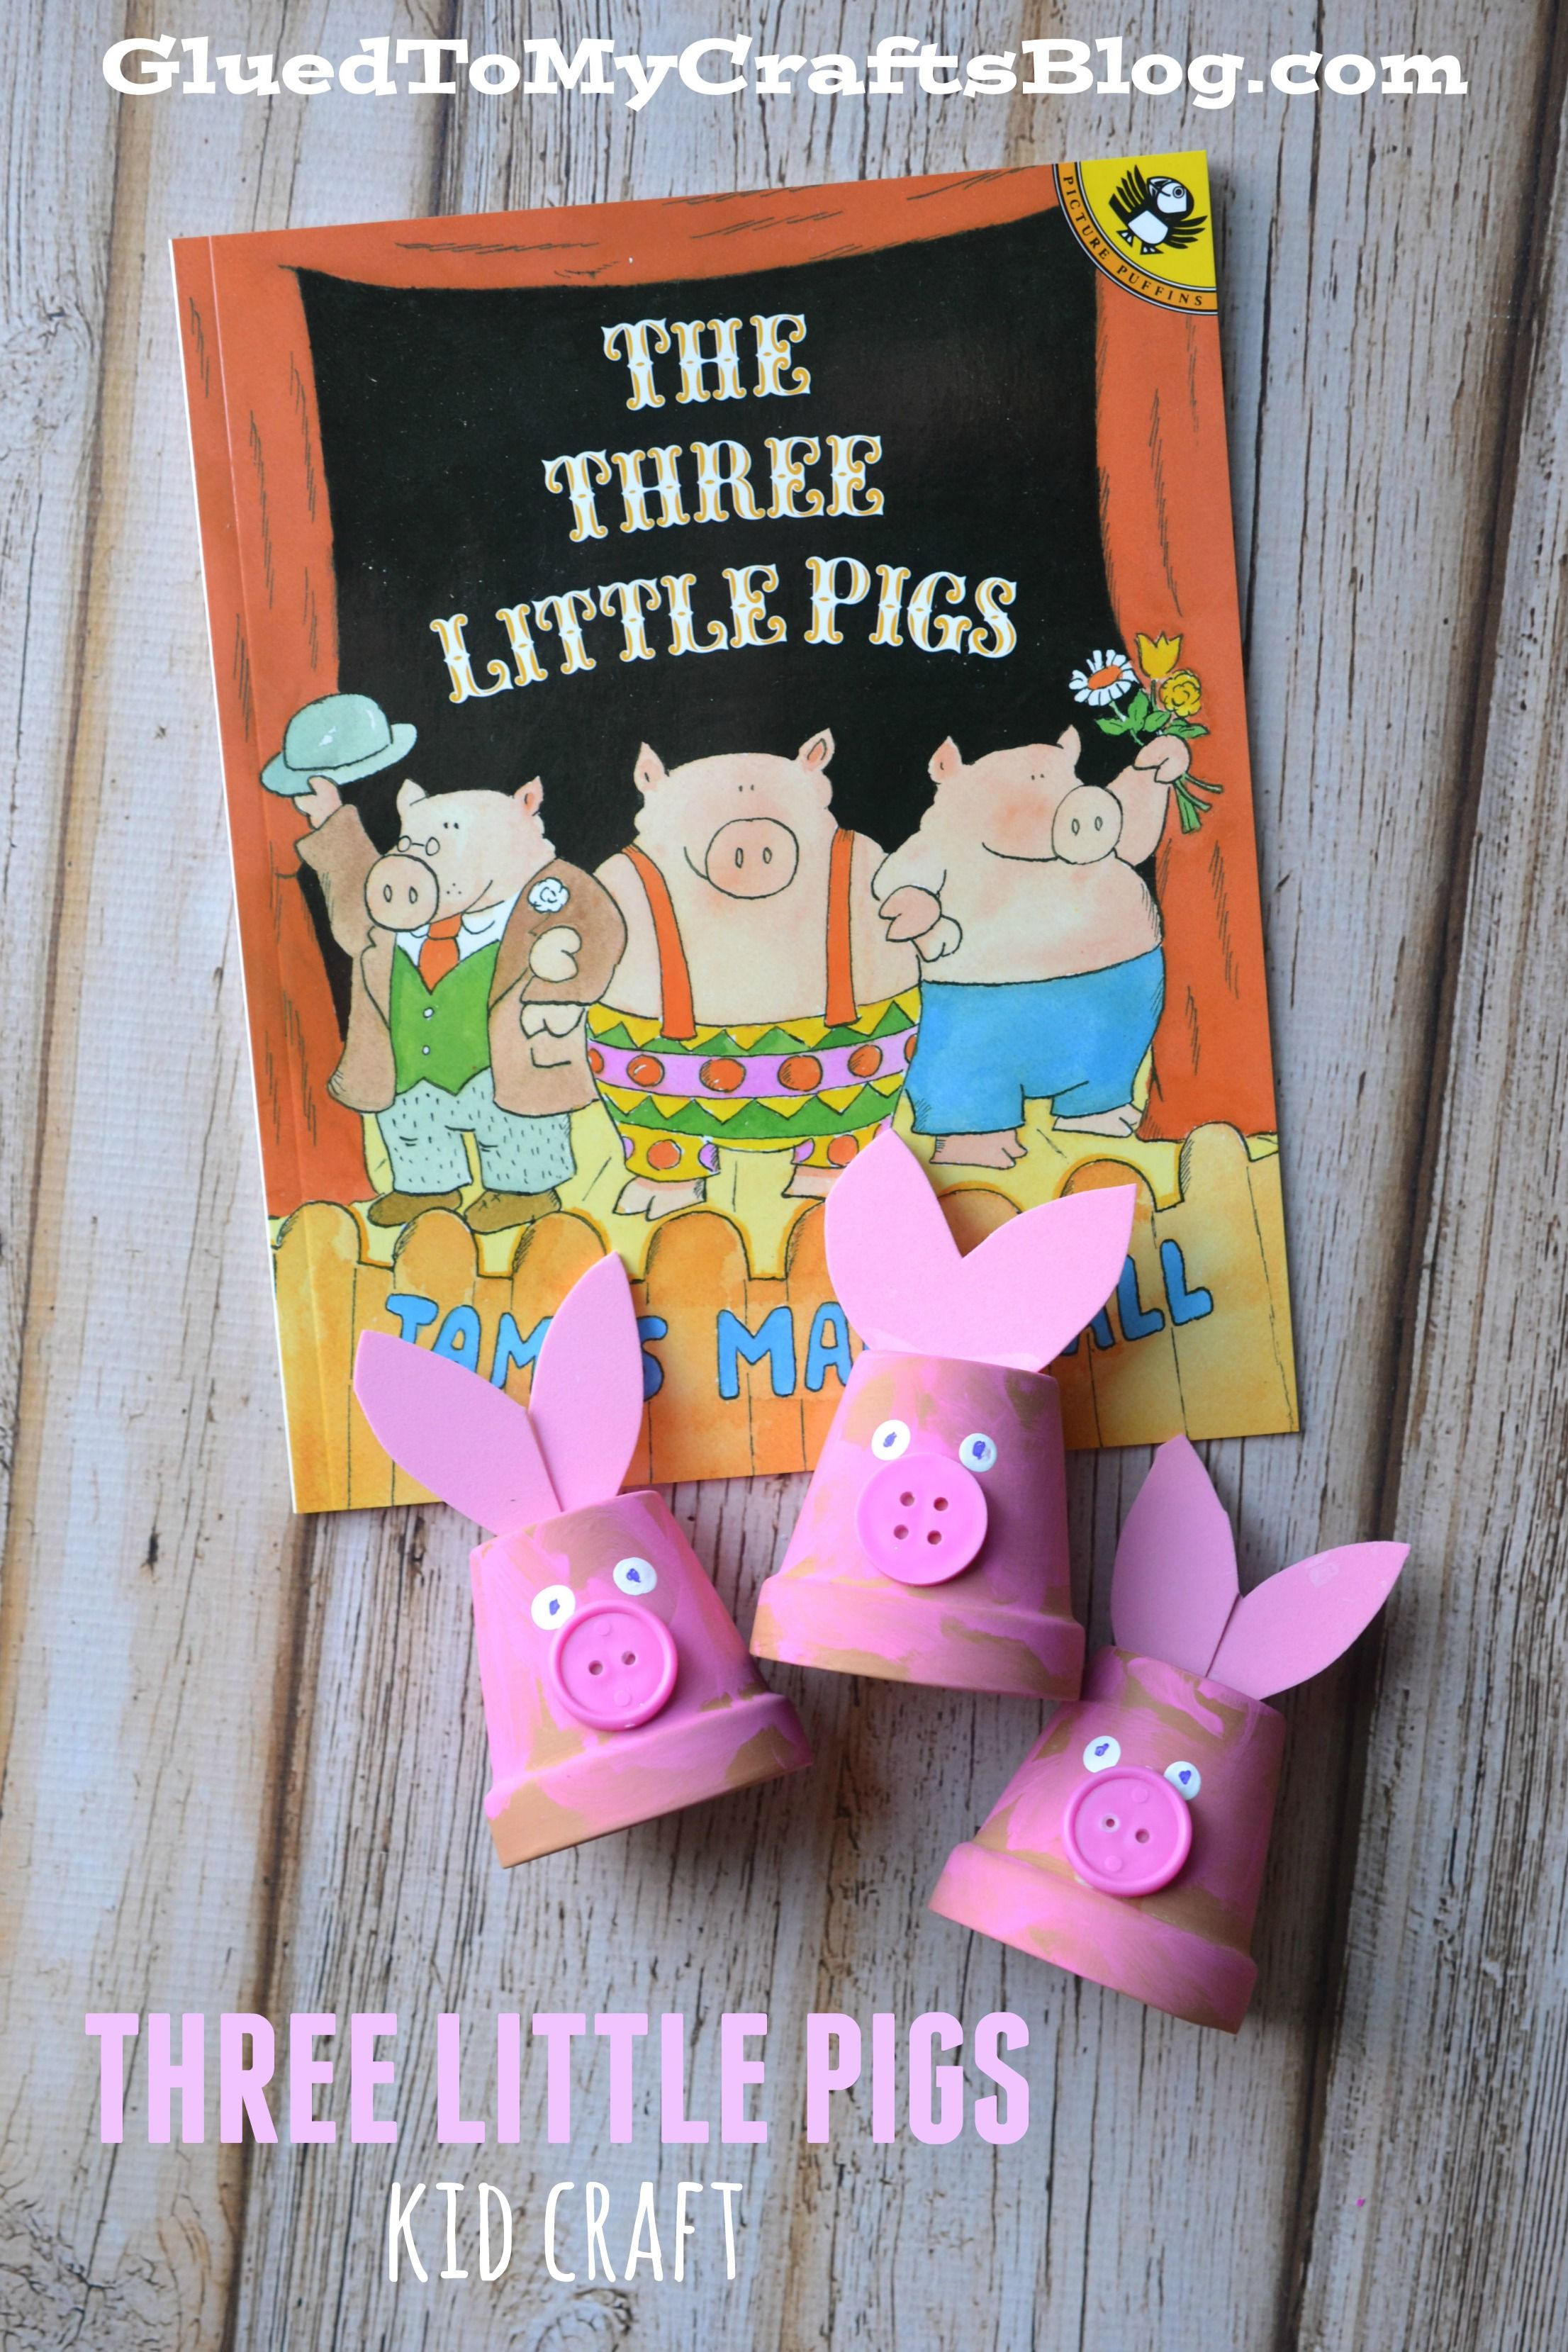 Three Little Pigs Kid Craft